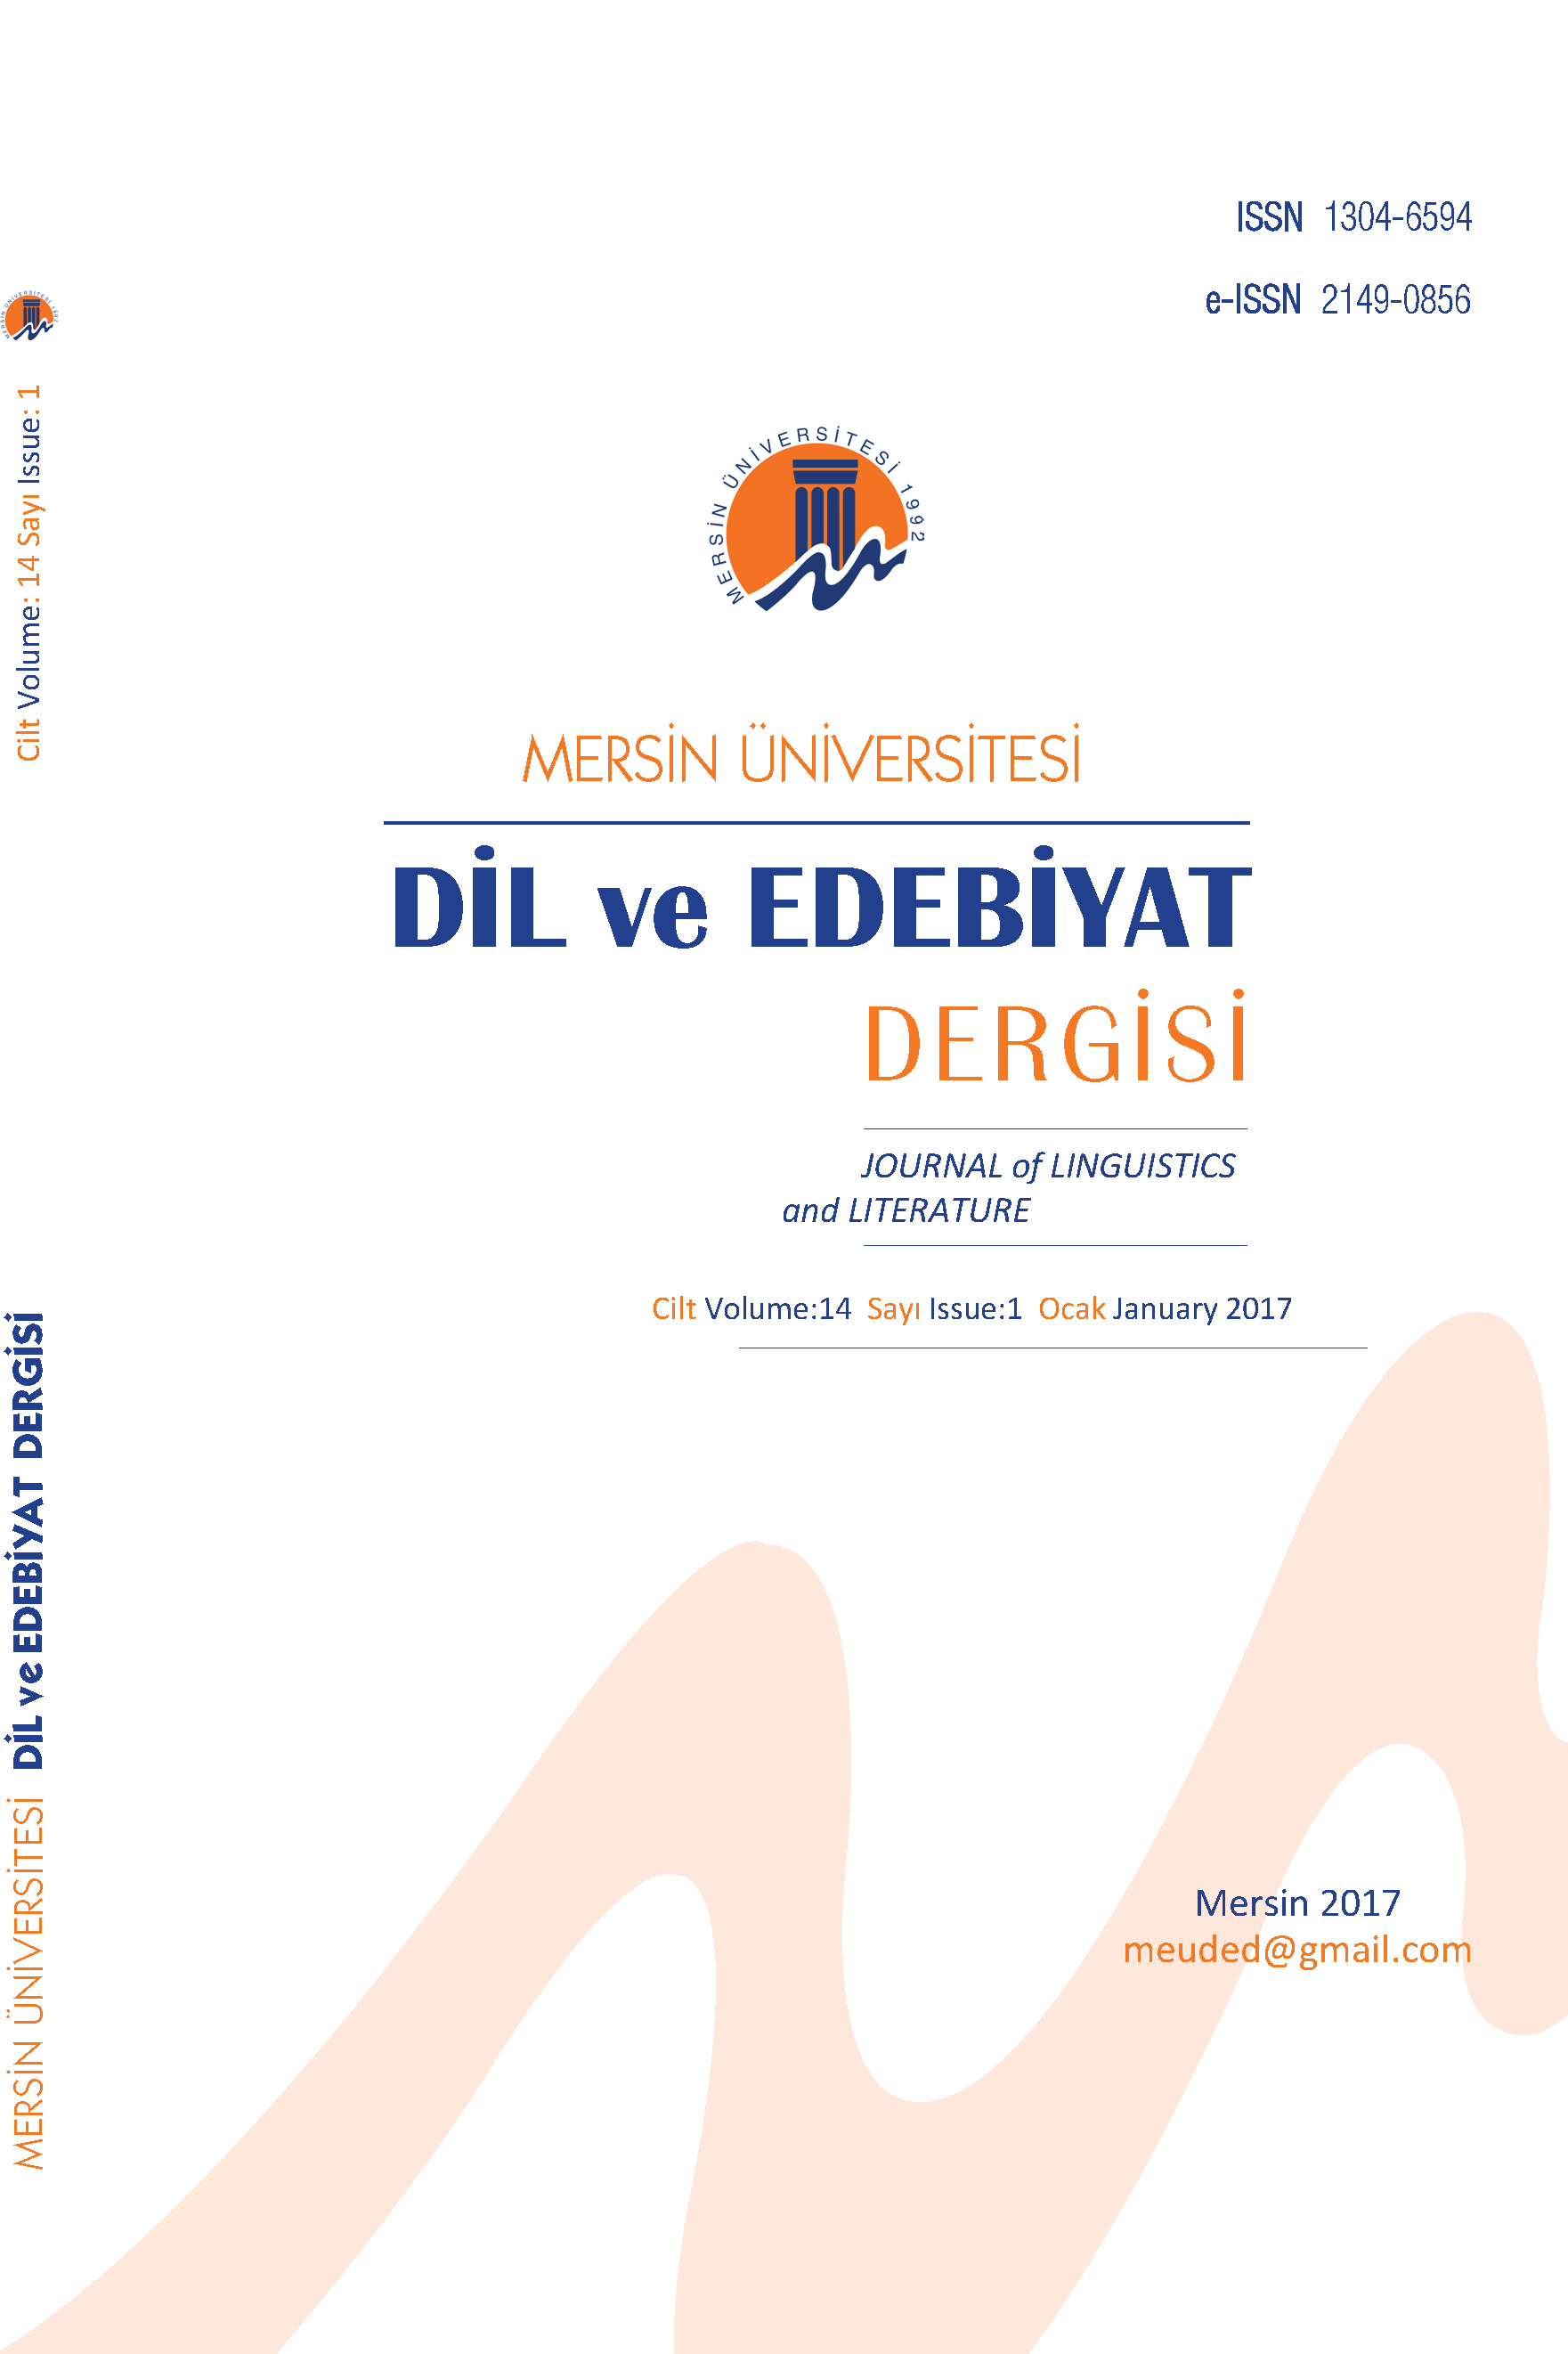 Journal of Linguistics and Literature